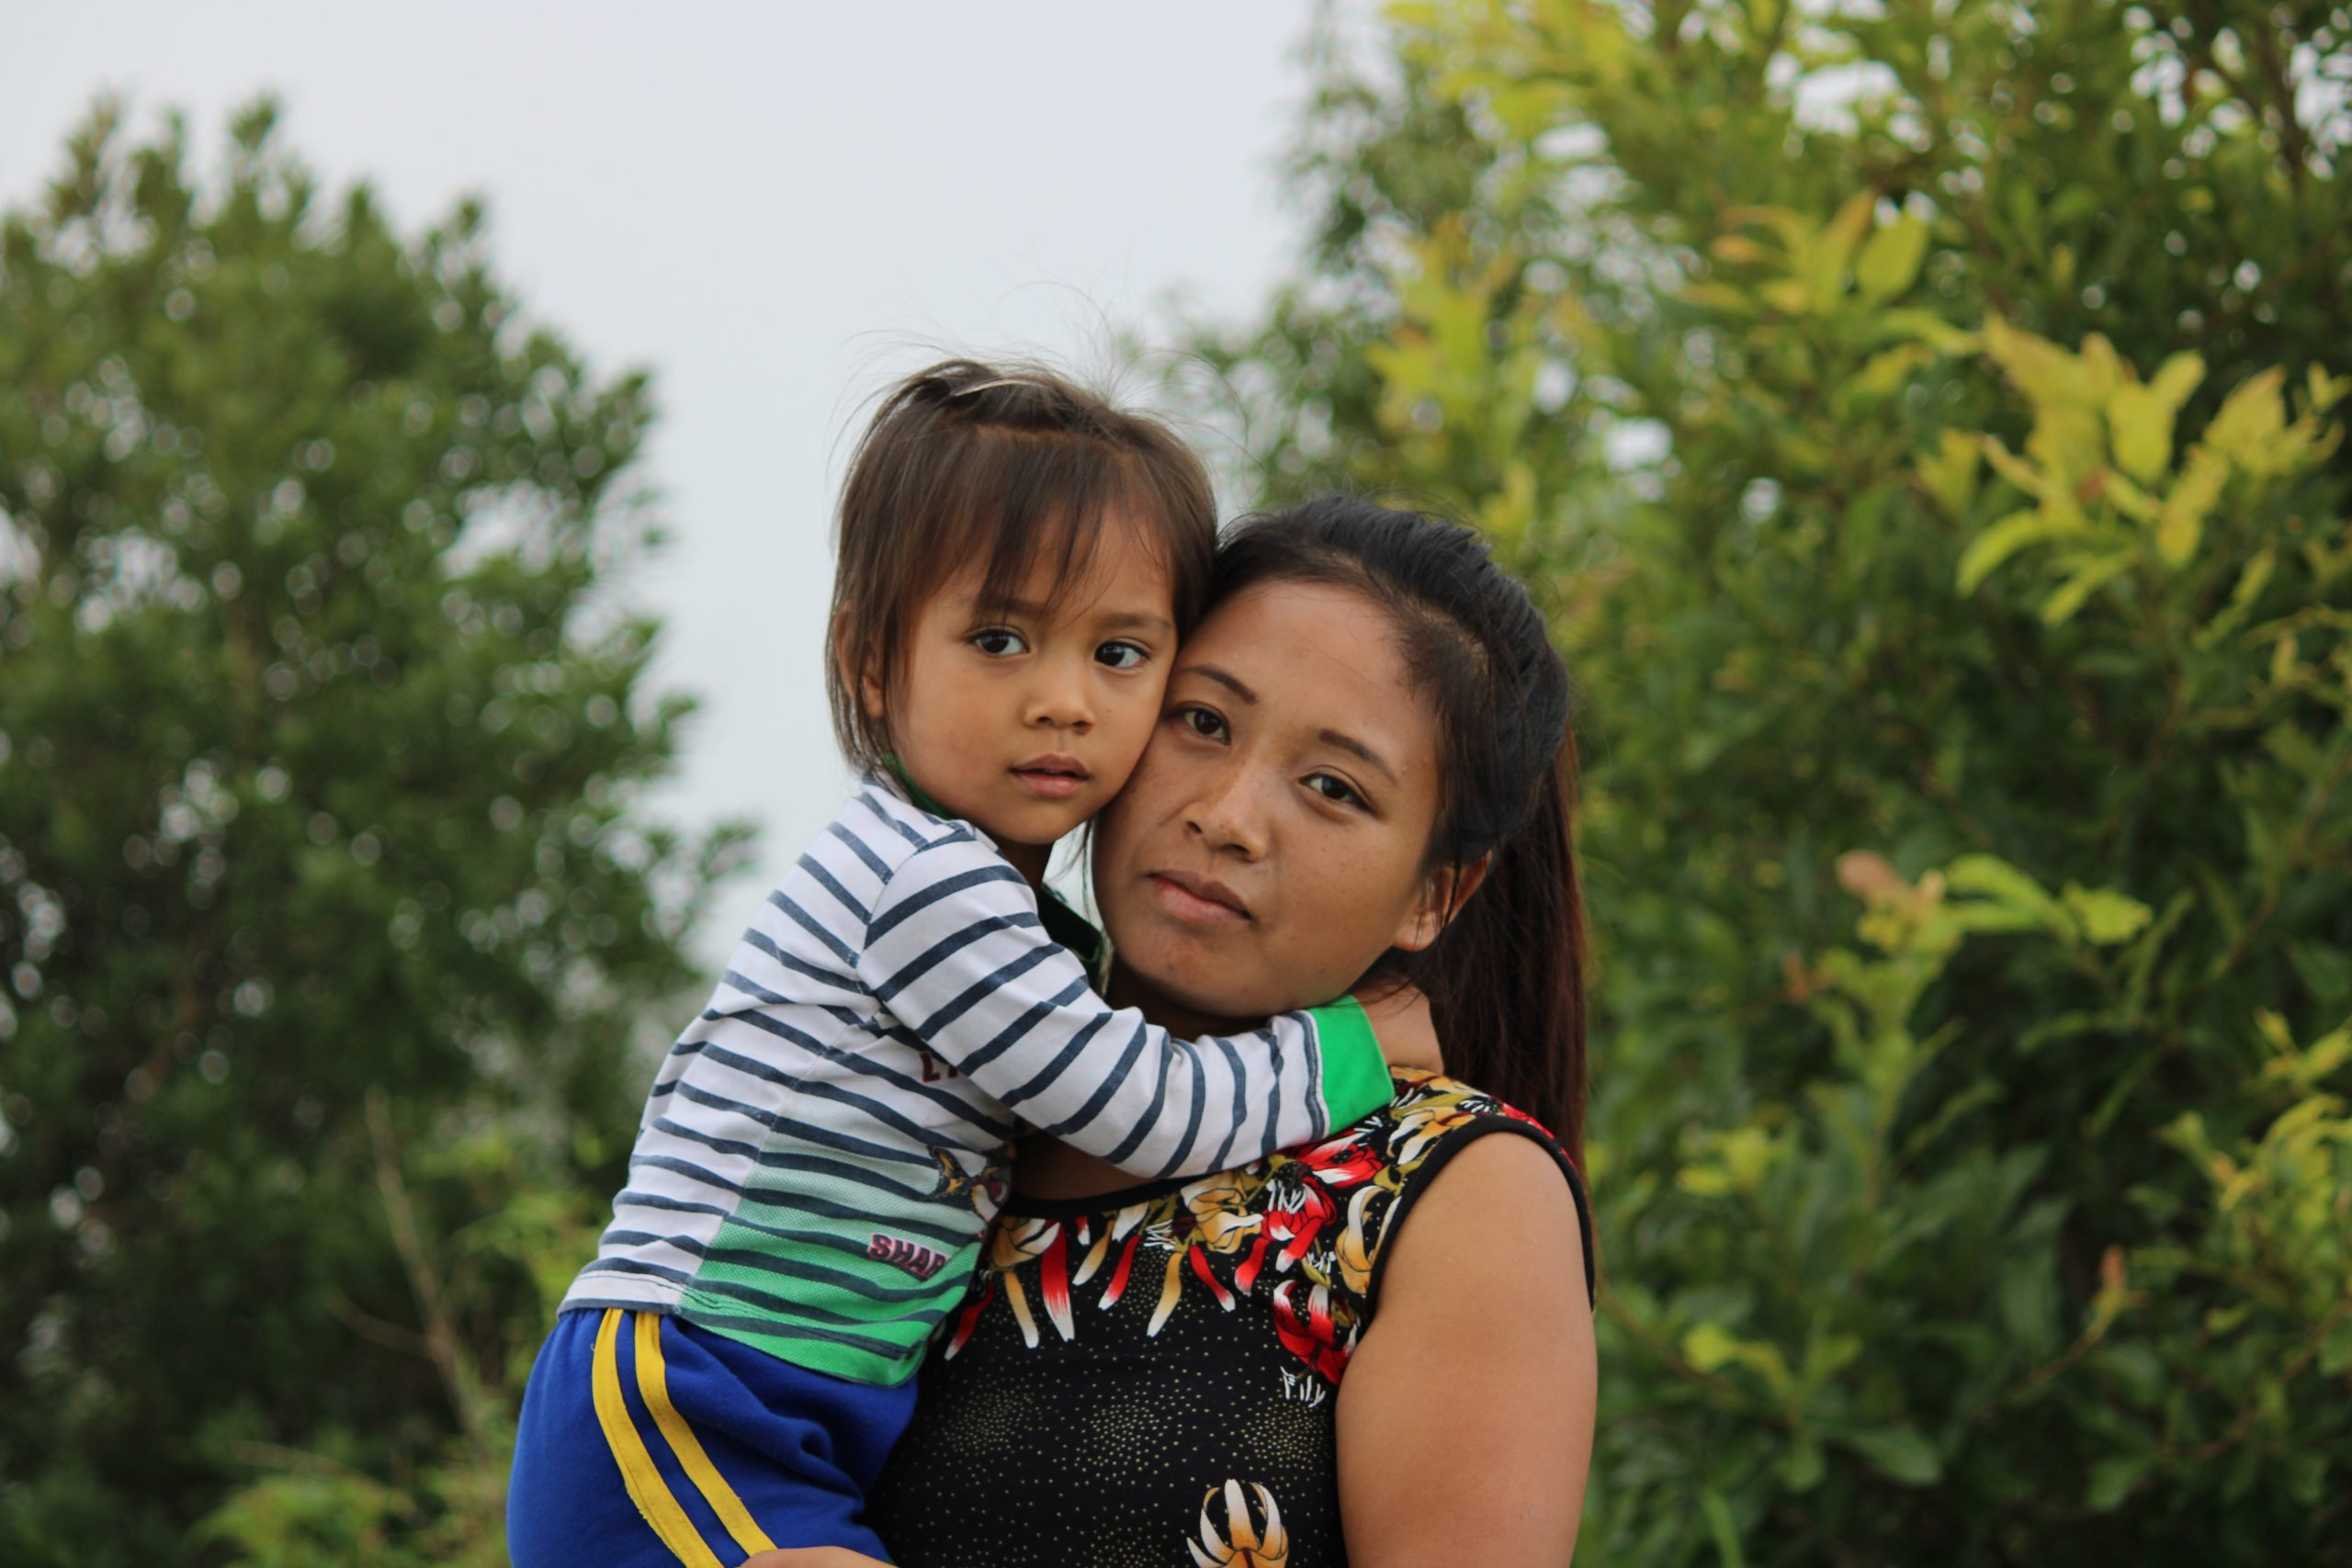 A woman with her daughter in her arms.